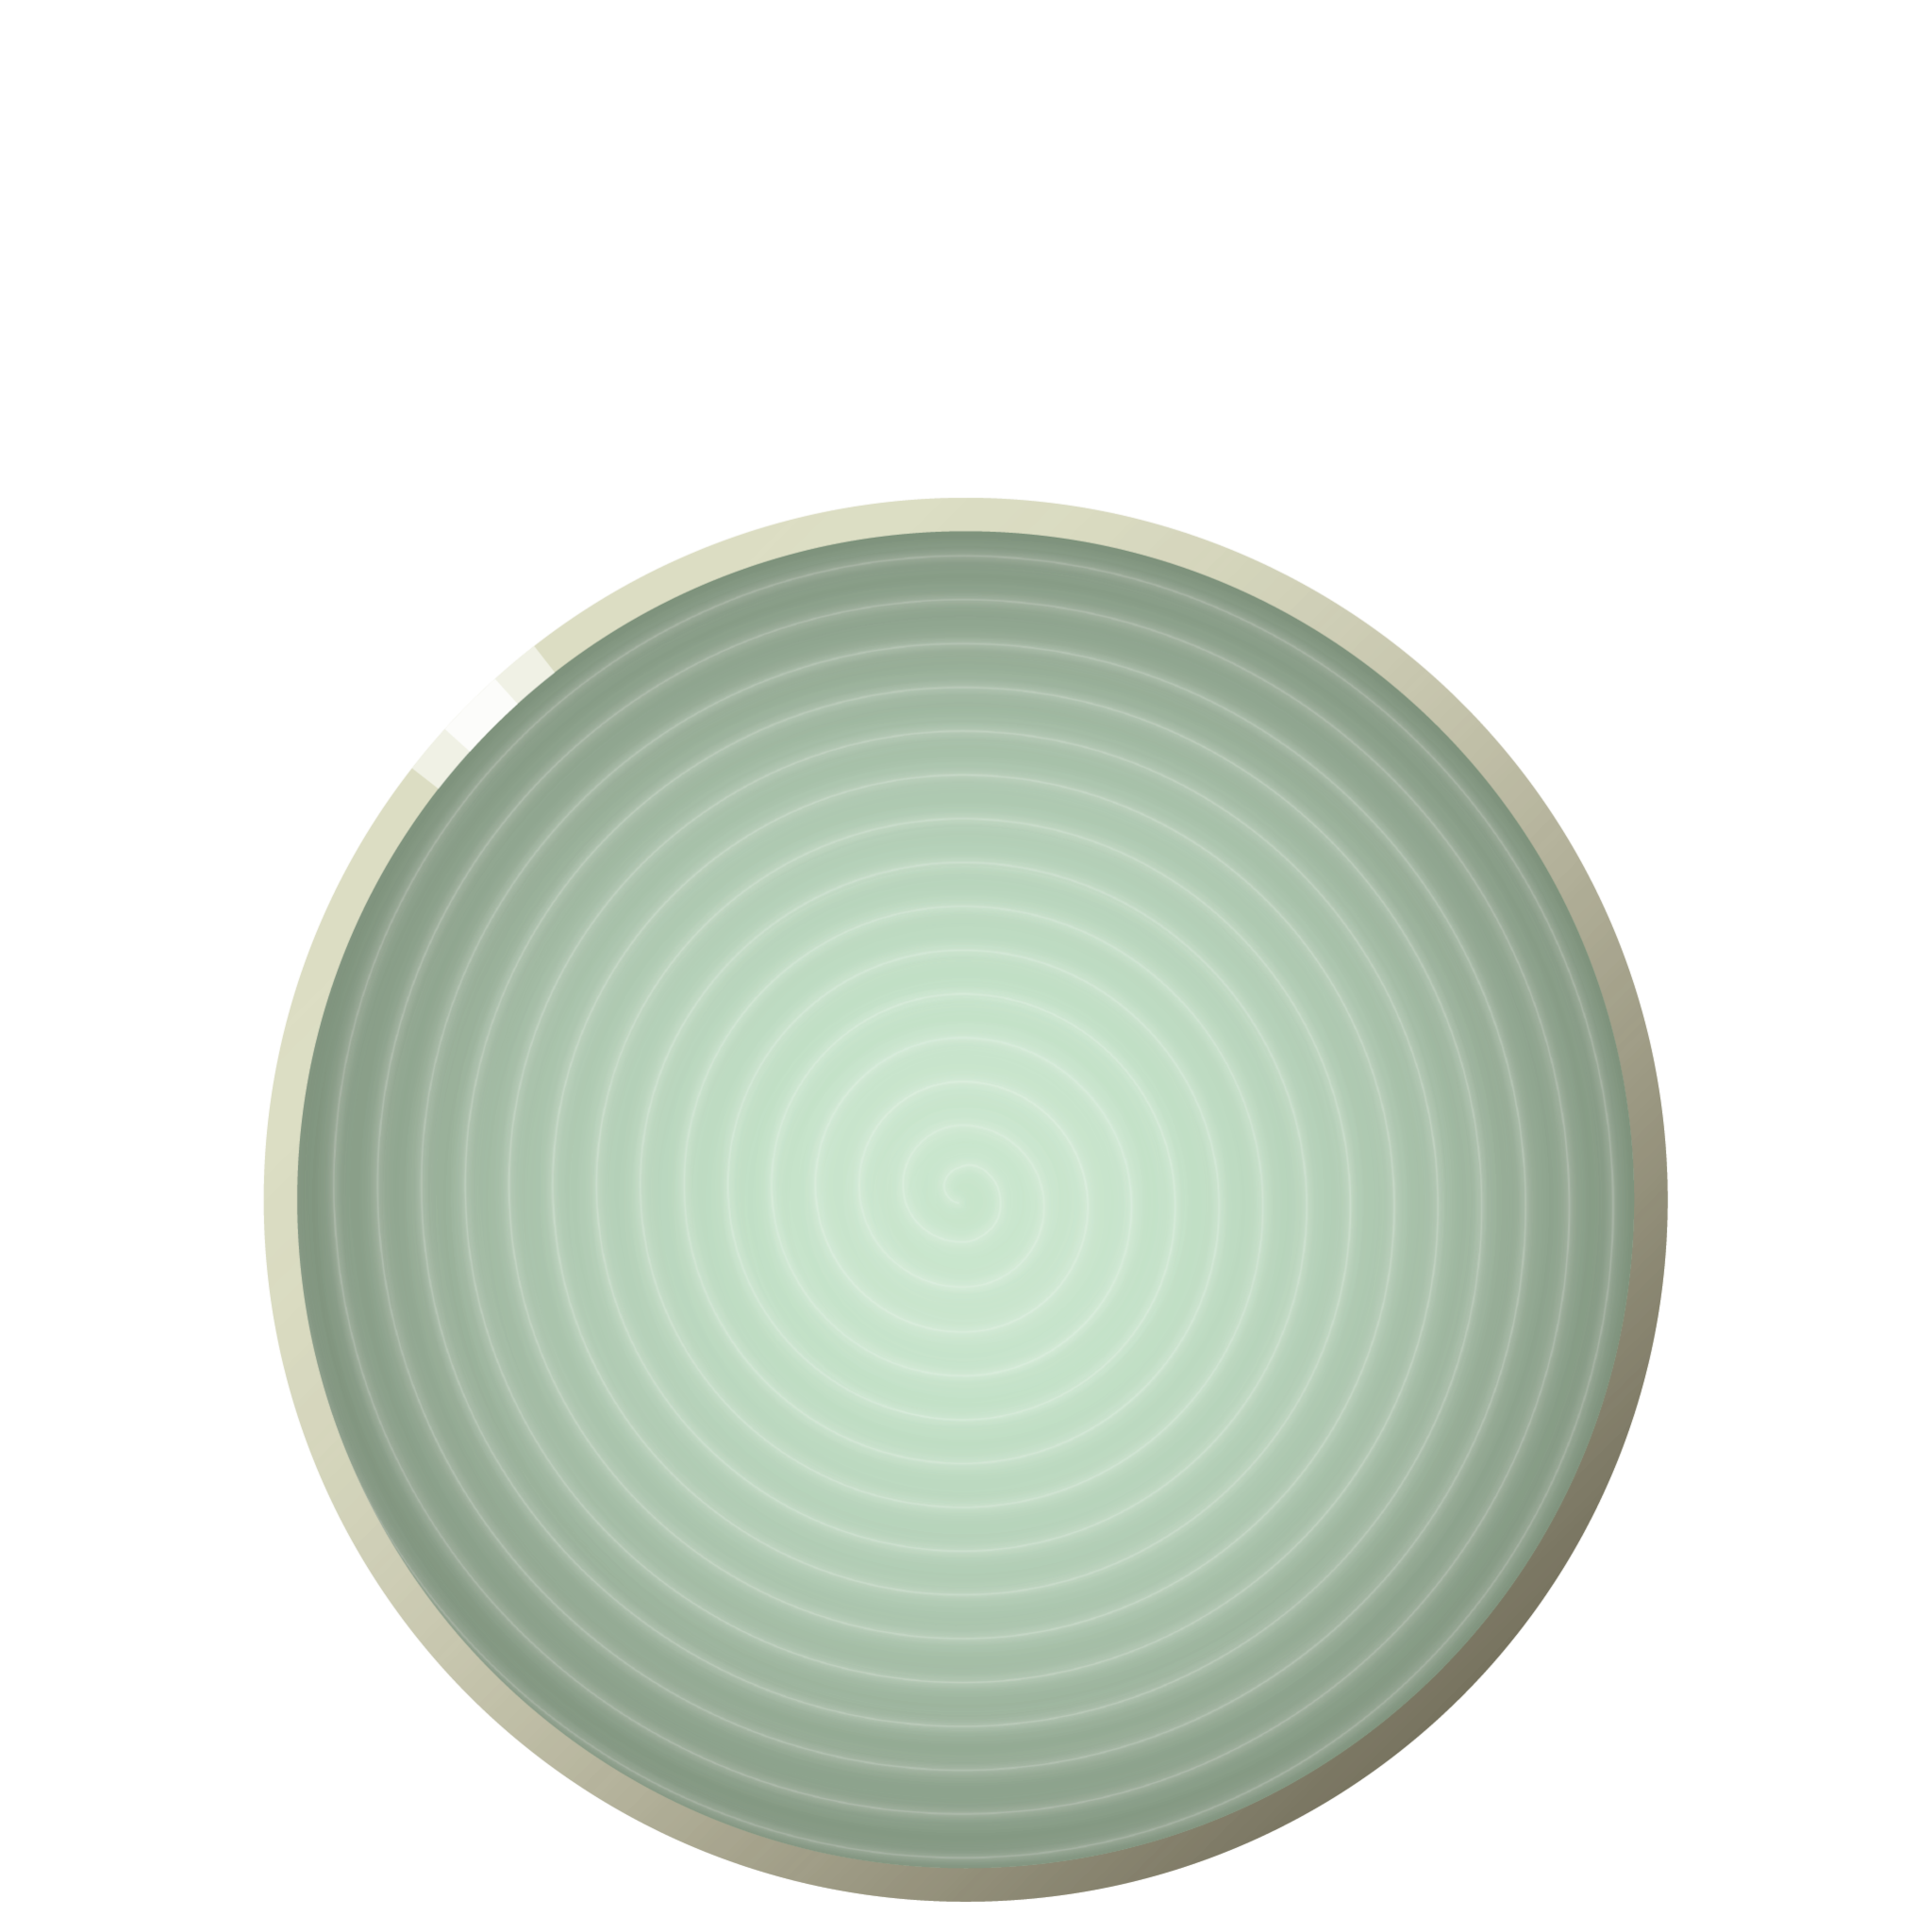 Enso dinner handmade by. Plate clipart soup bowl